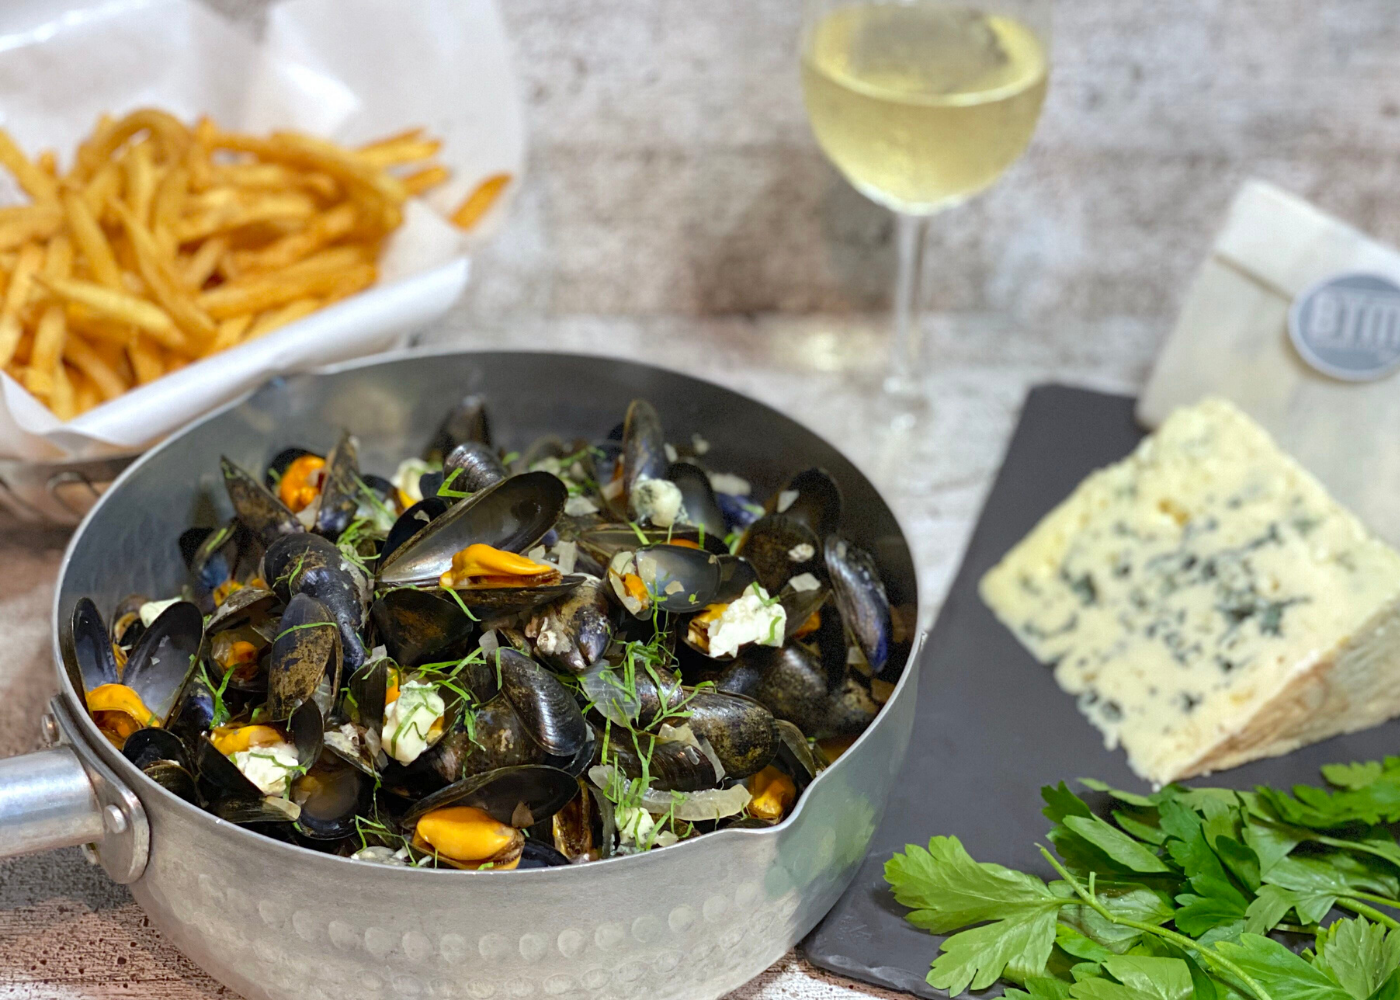 BTM Mussels & Bar | Hot New Restaurants in January 2020